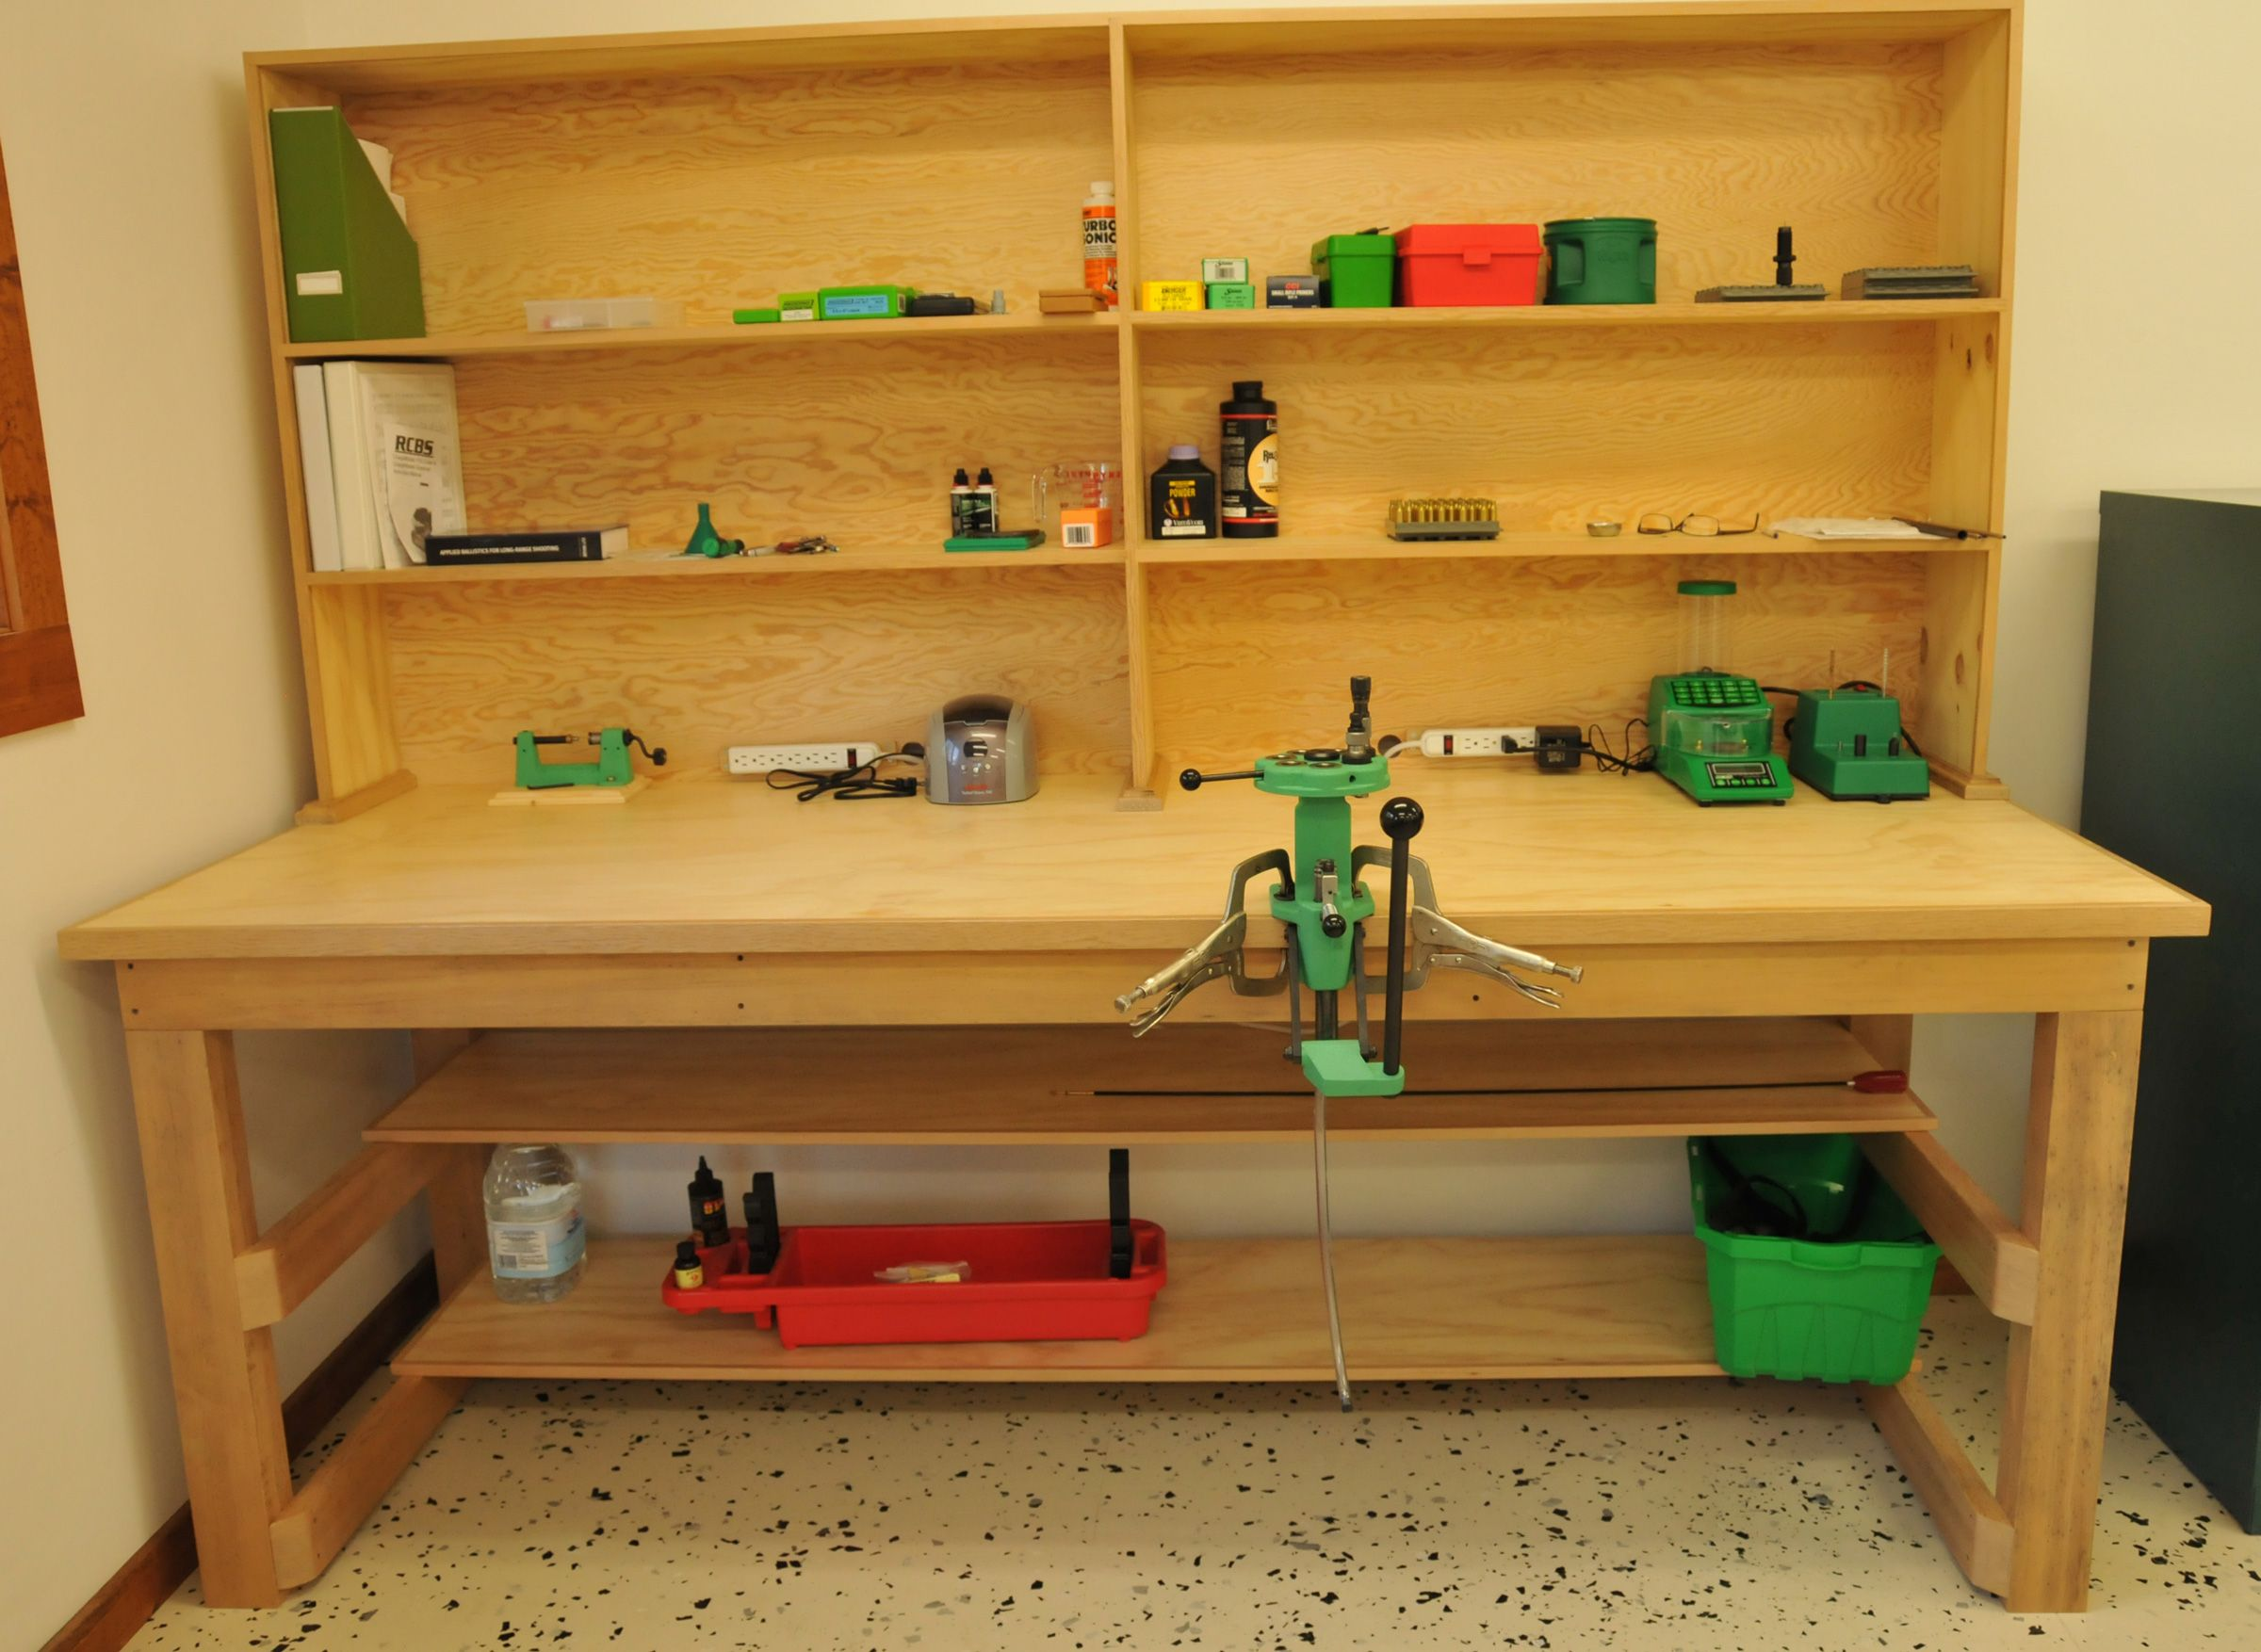 The Reloading Bench That I Designed And Hubby Built I Sanded And Clear Coated 8 X 3 X 36 Tall Uppe Reloading Bench Reloading Bench Plans Reloading Room